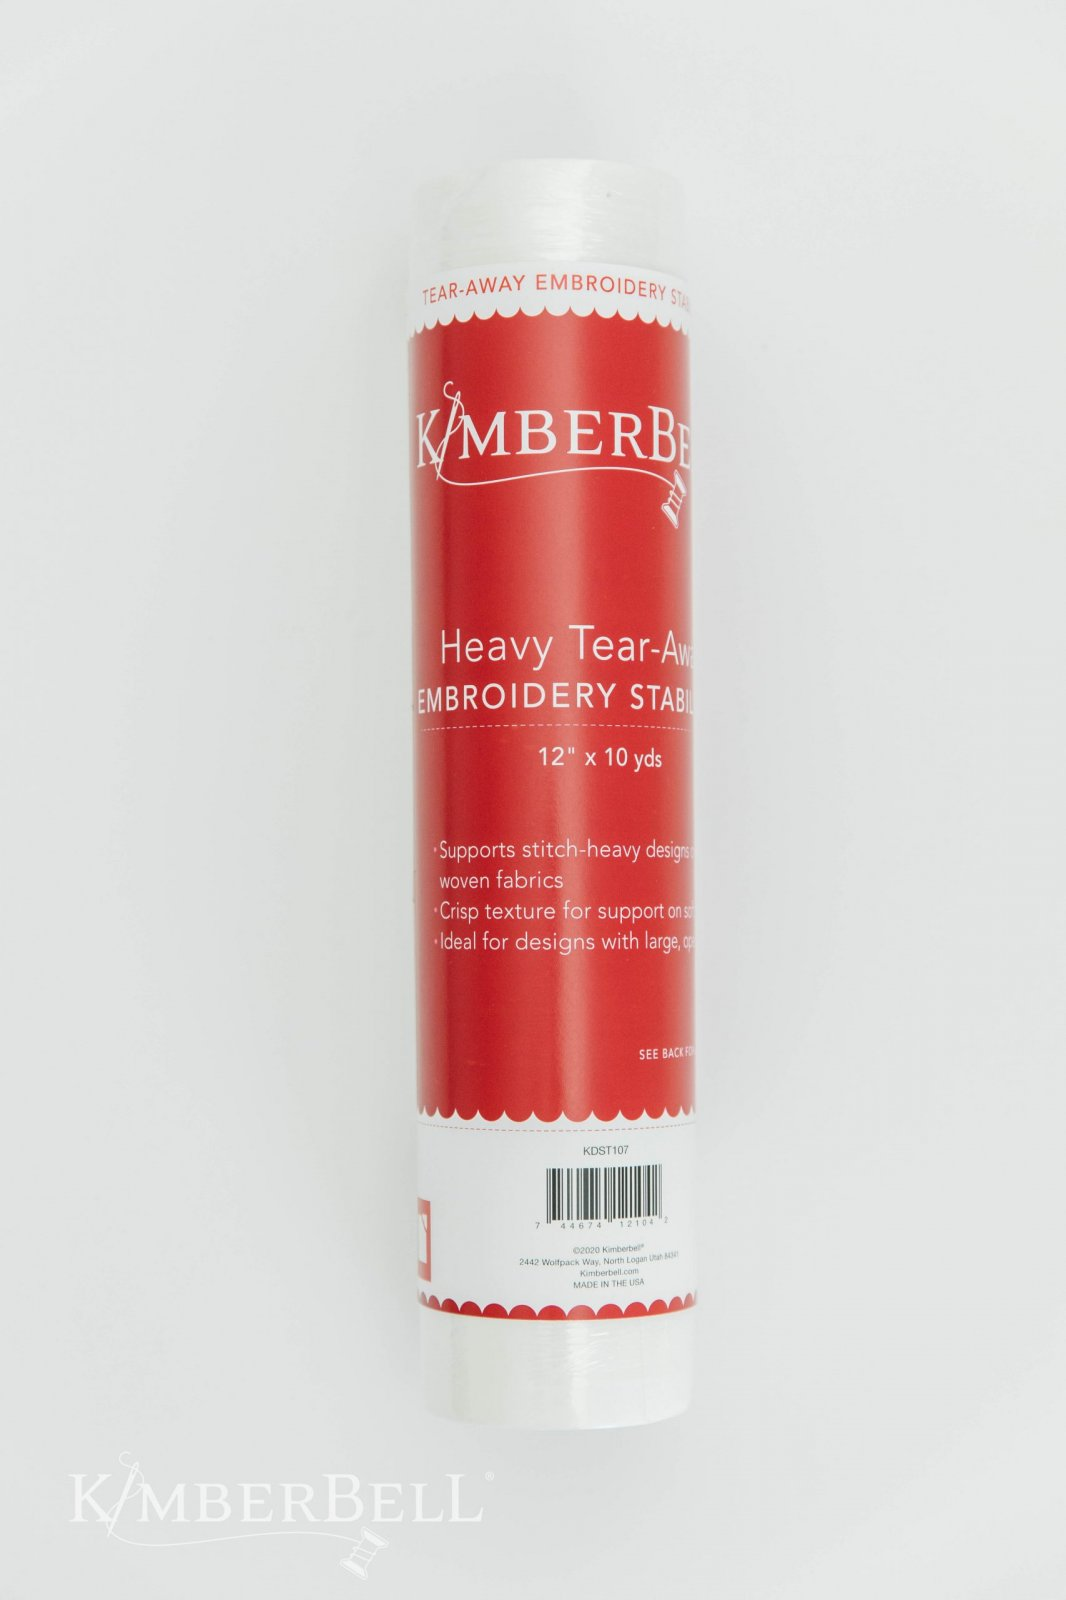 Kimberbell Heavy Tear-Away Stabilizer